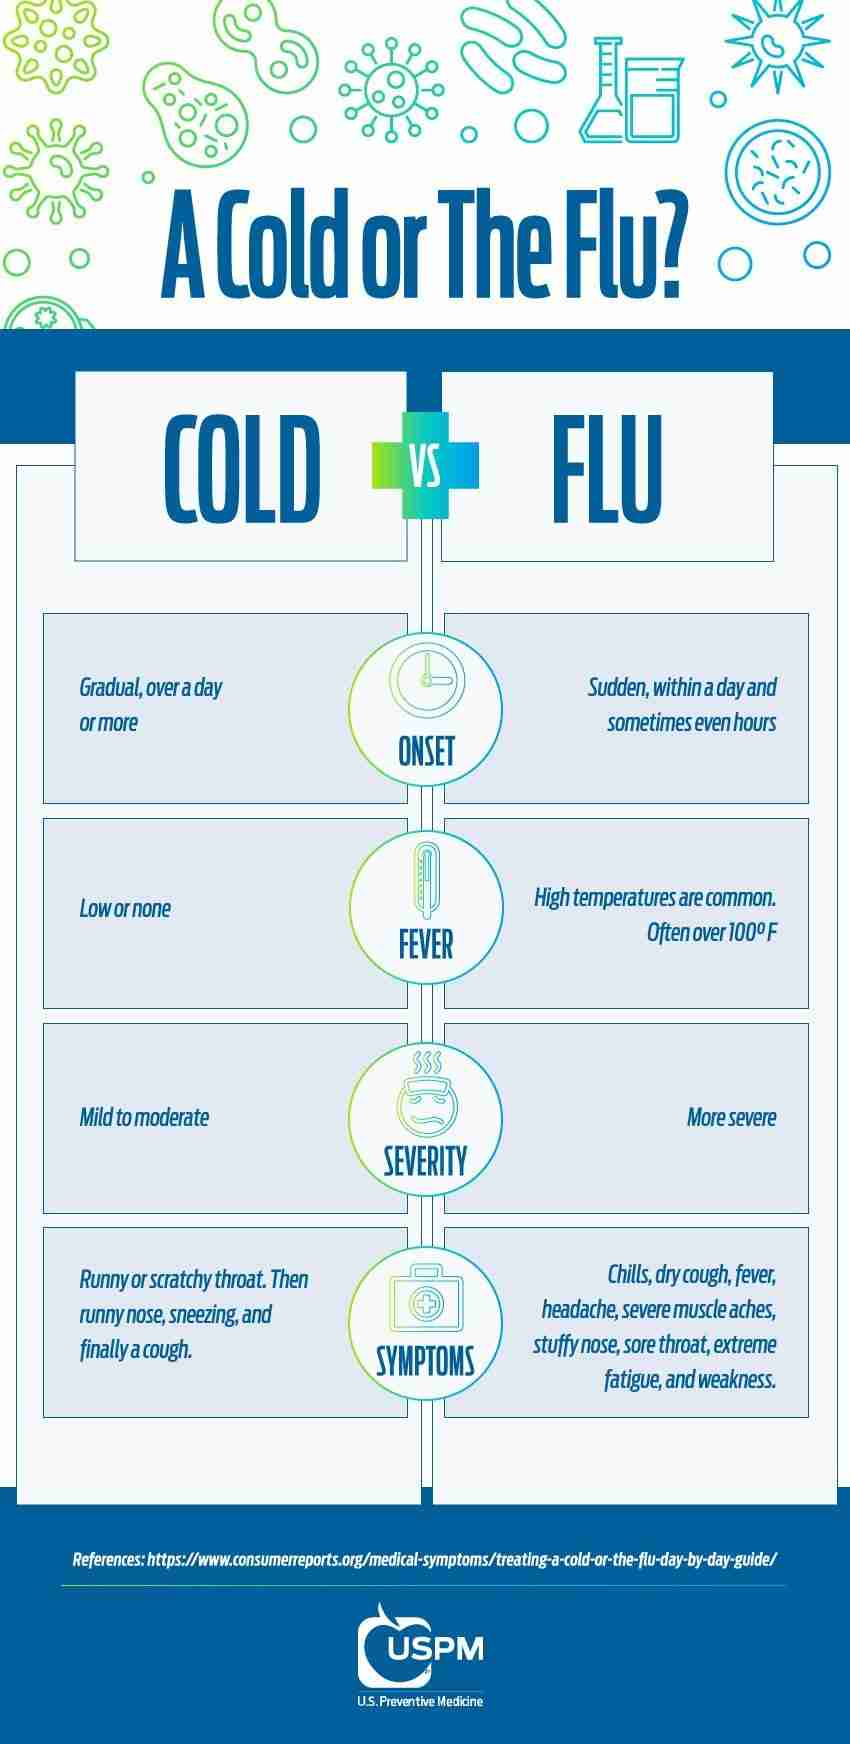 USPM Cold vs Flu Infographic